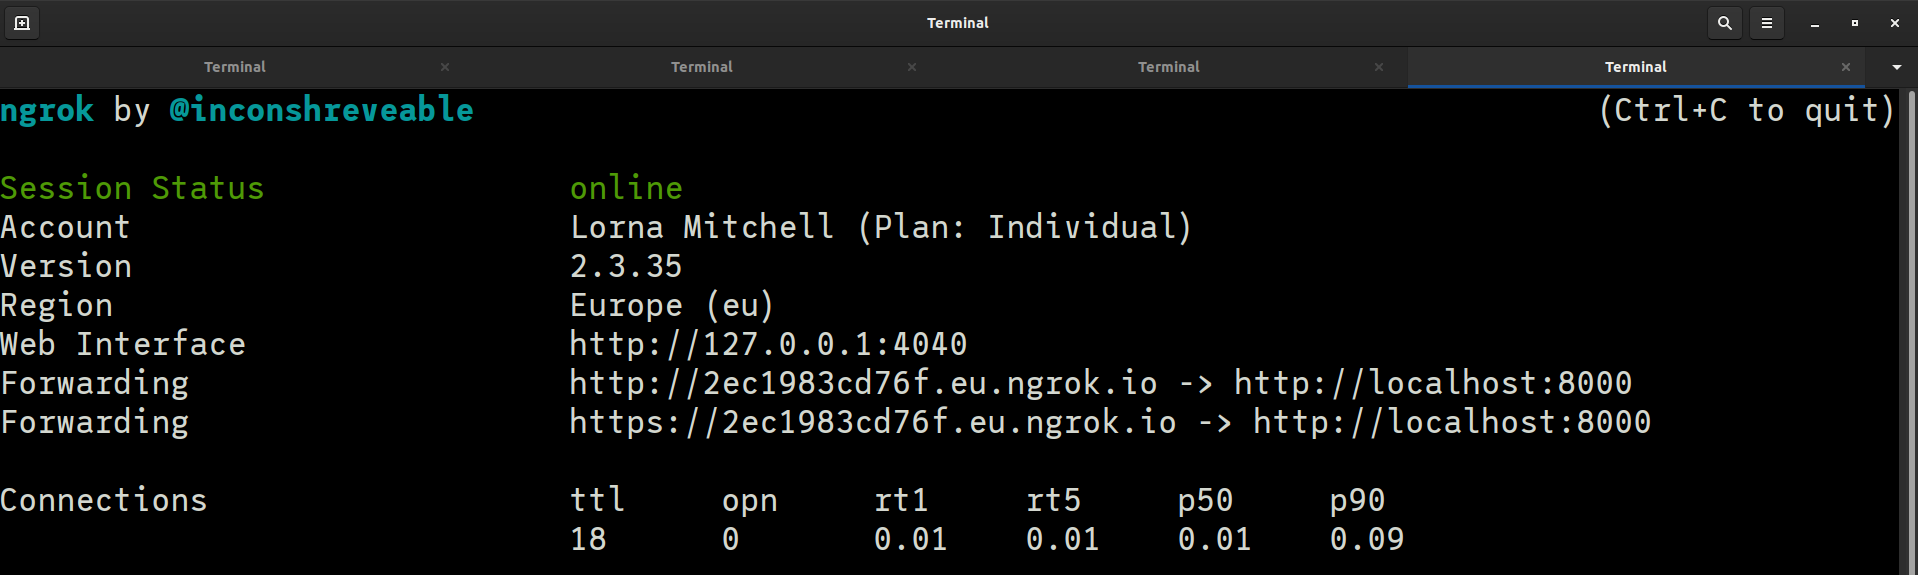 Ngrok running nicely in the terminal